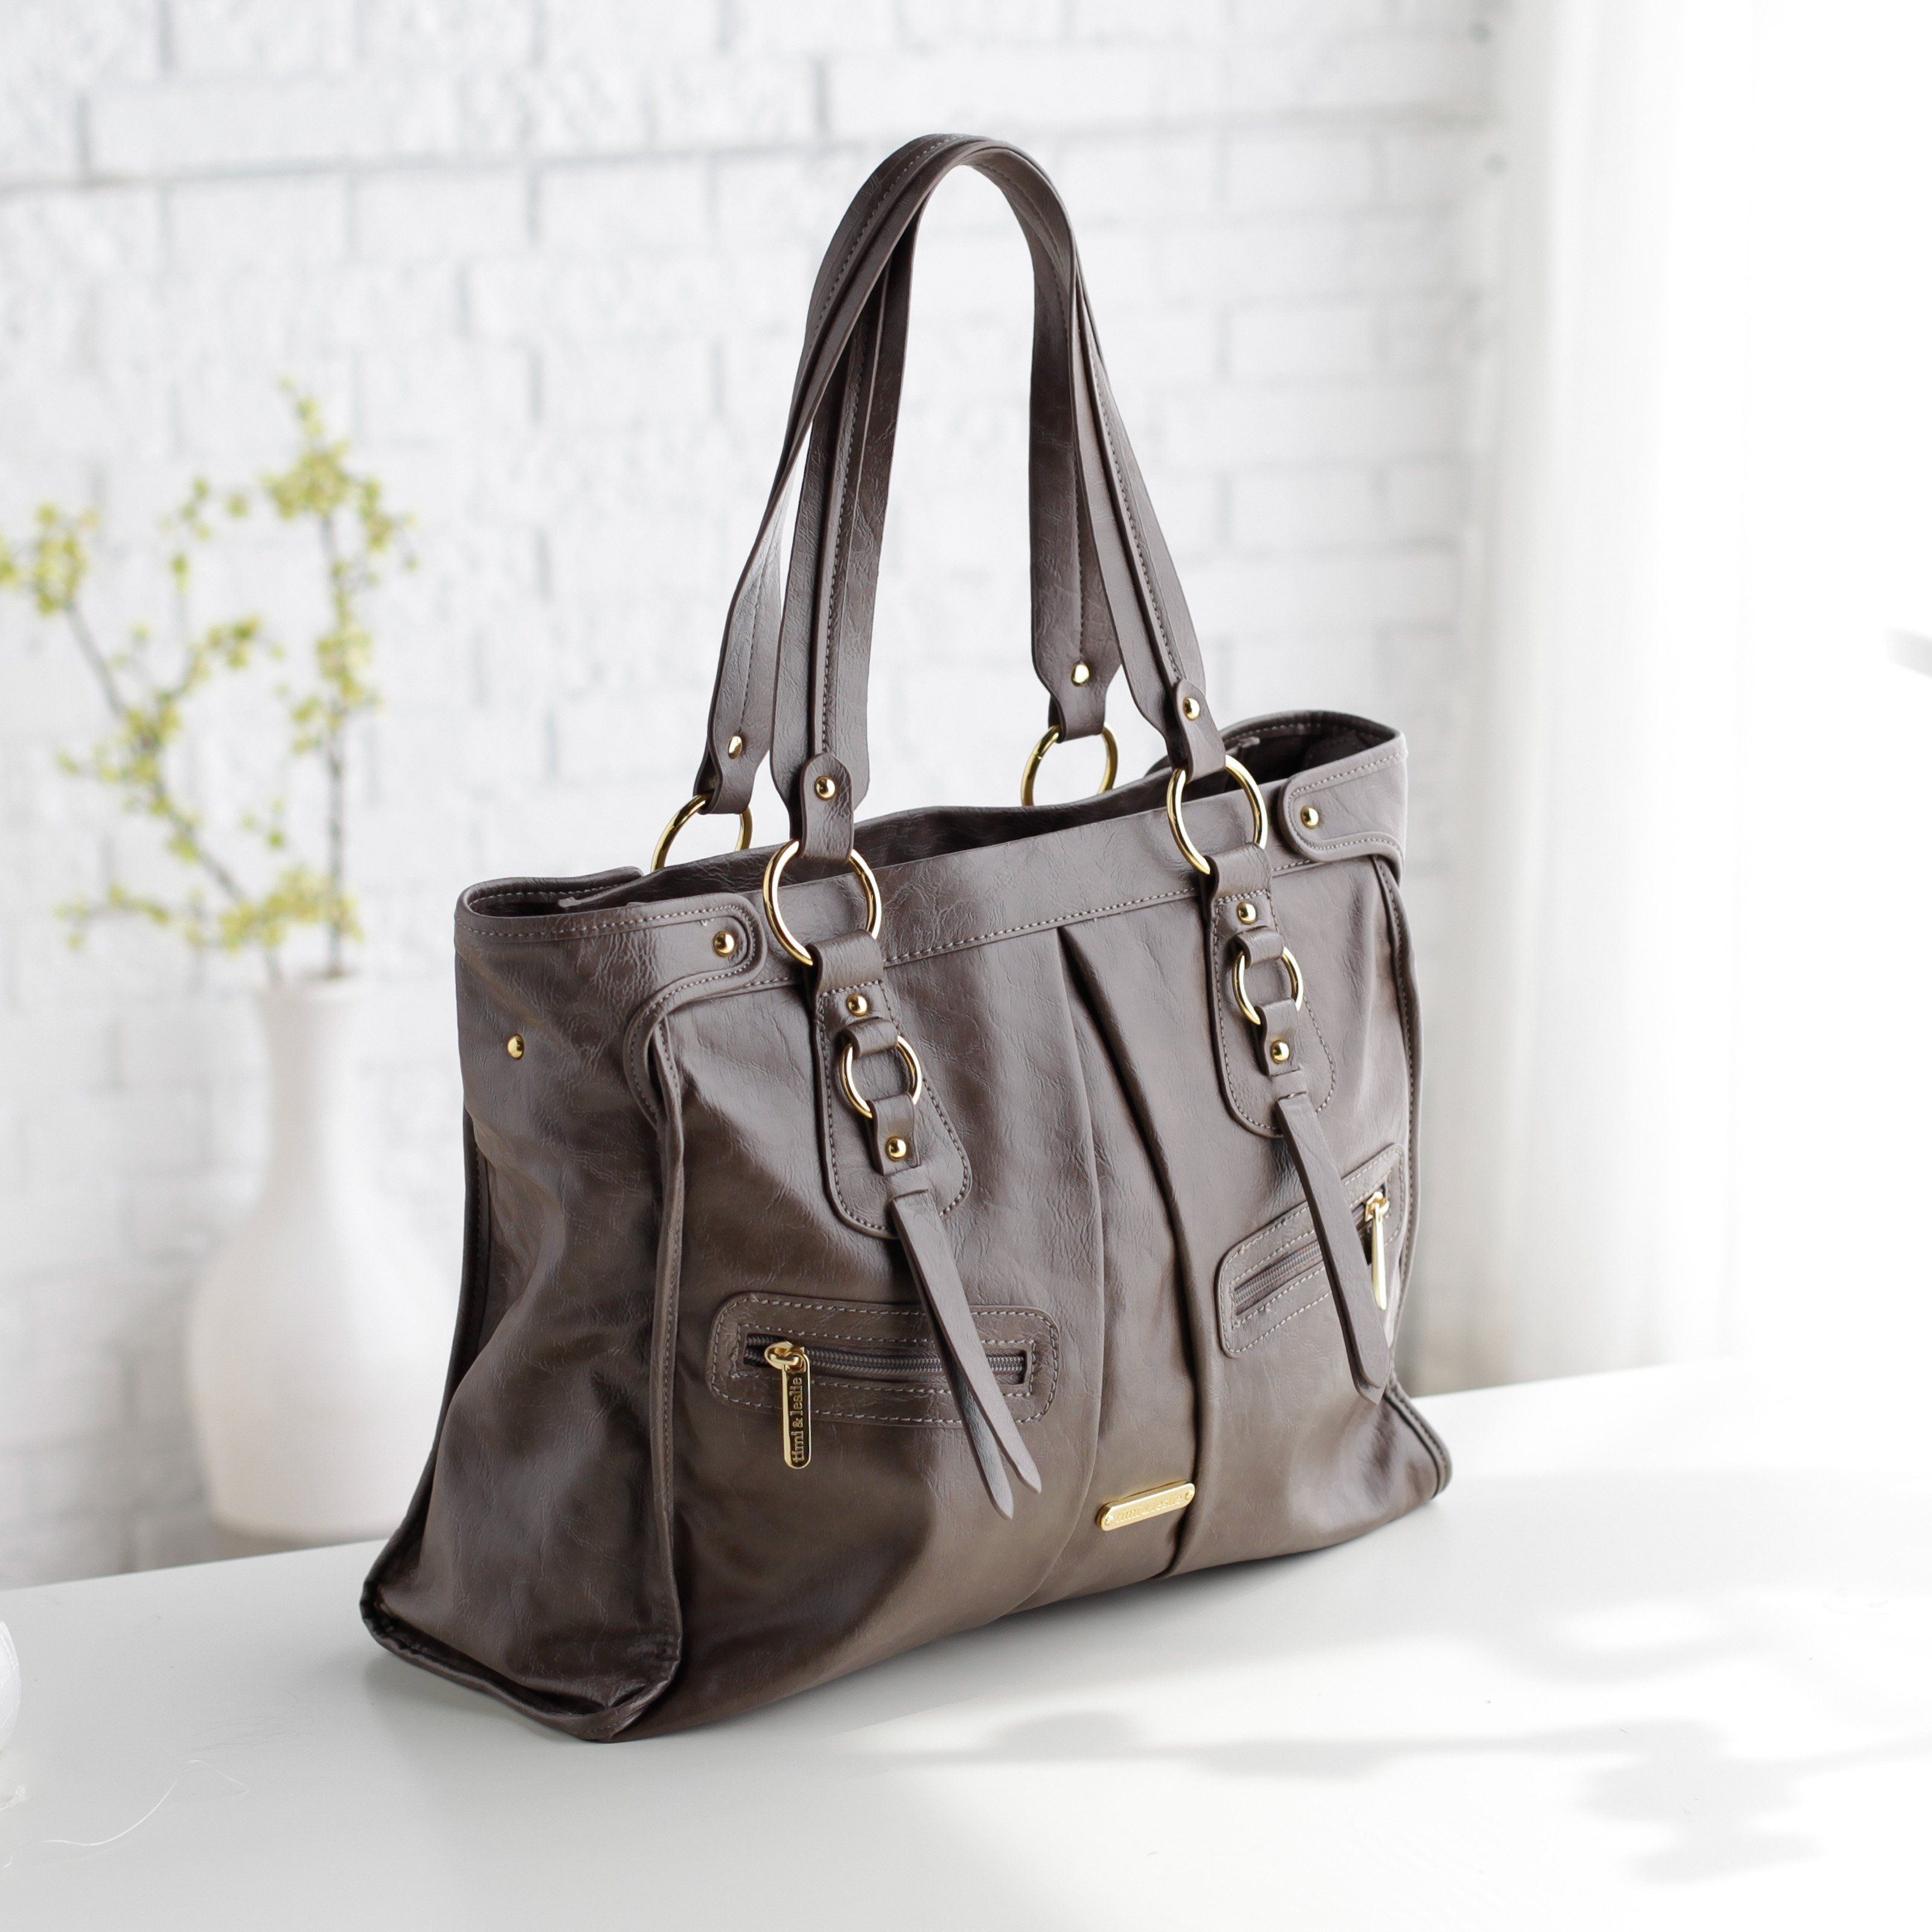 Timi And Leslie Dawn Convertible Diaper Bag Taupe We Live In An Age Of The Statement Handbag But Last You Want To Make Is A Formula